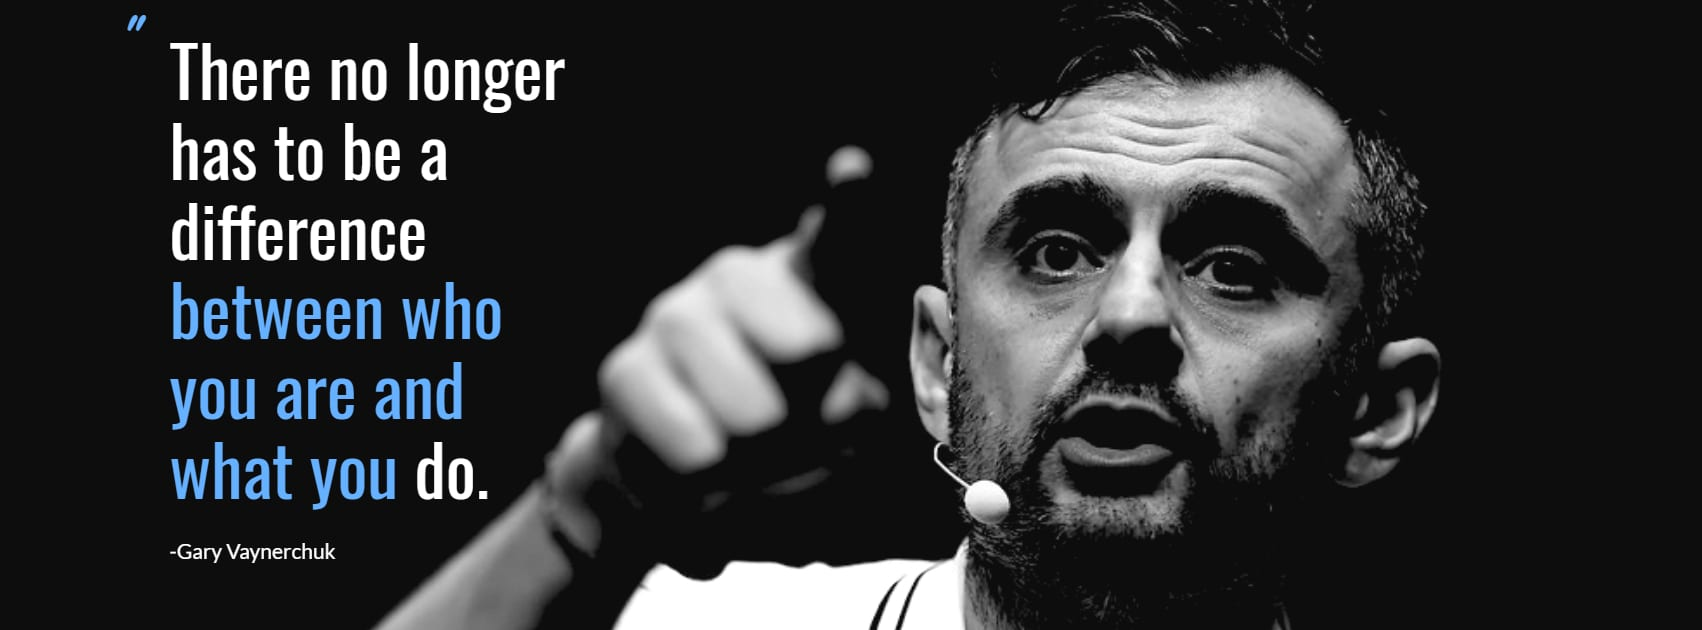 gary-vaynerchuk-top-10-inspirational-quotes-2019